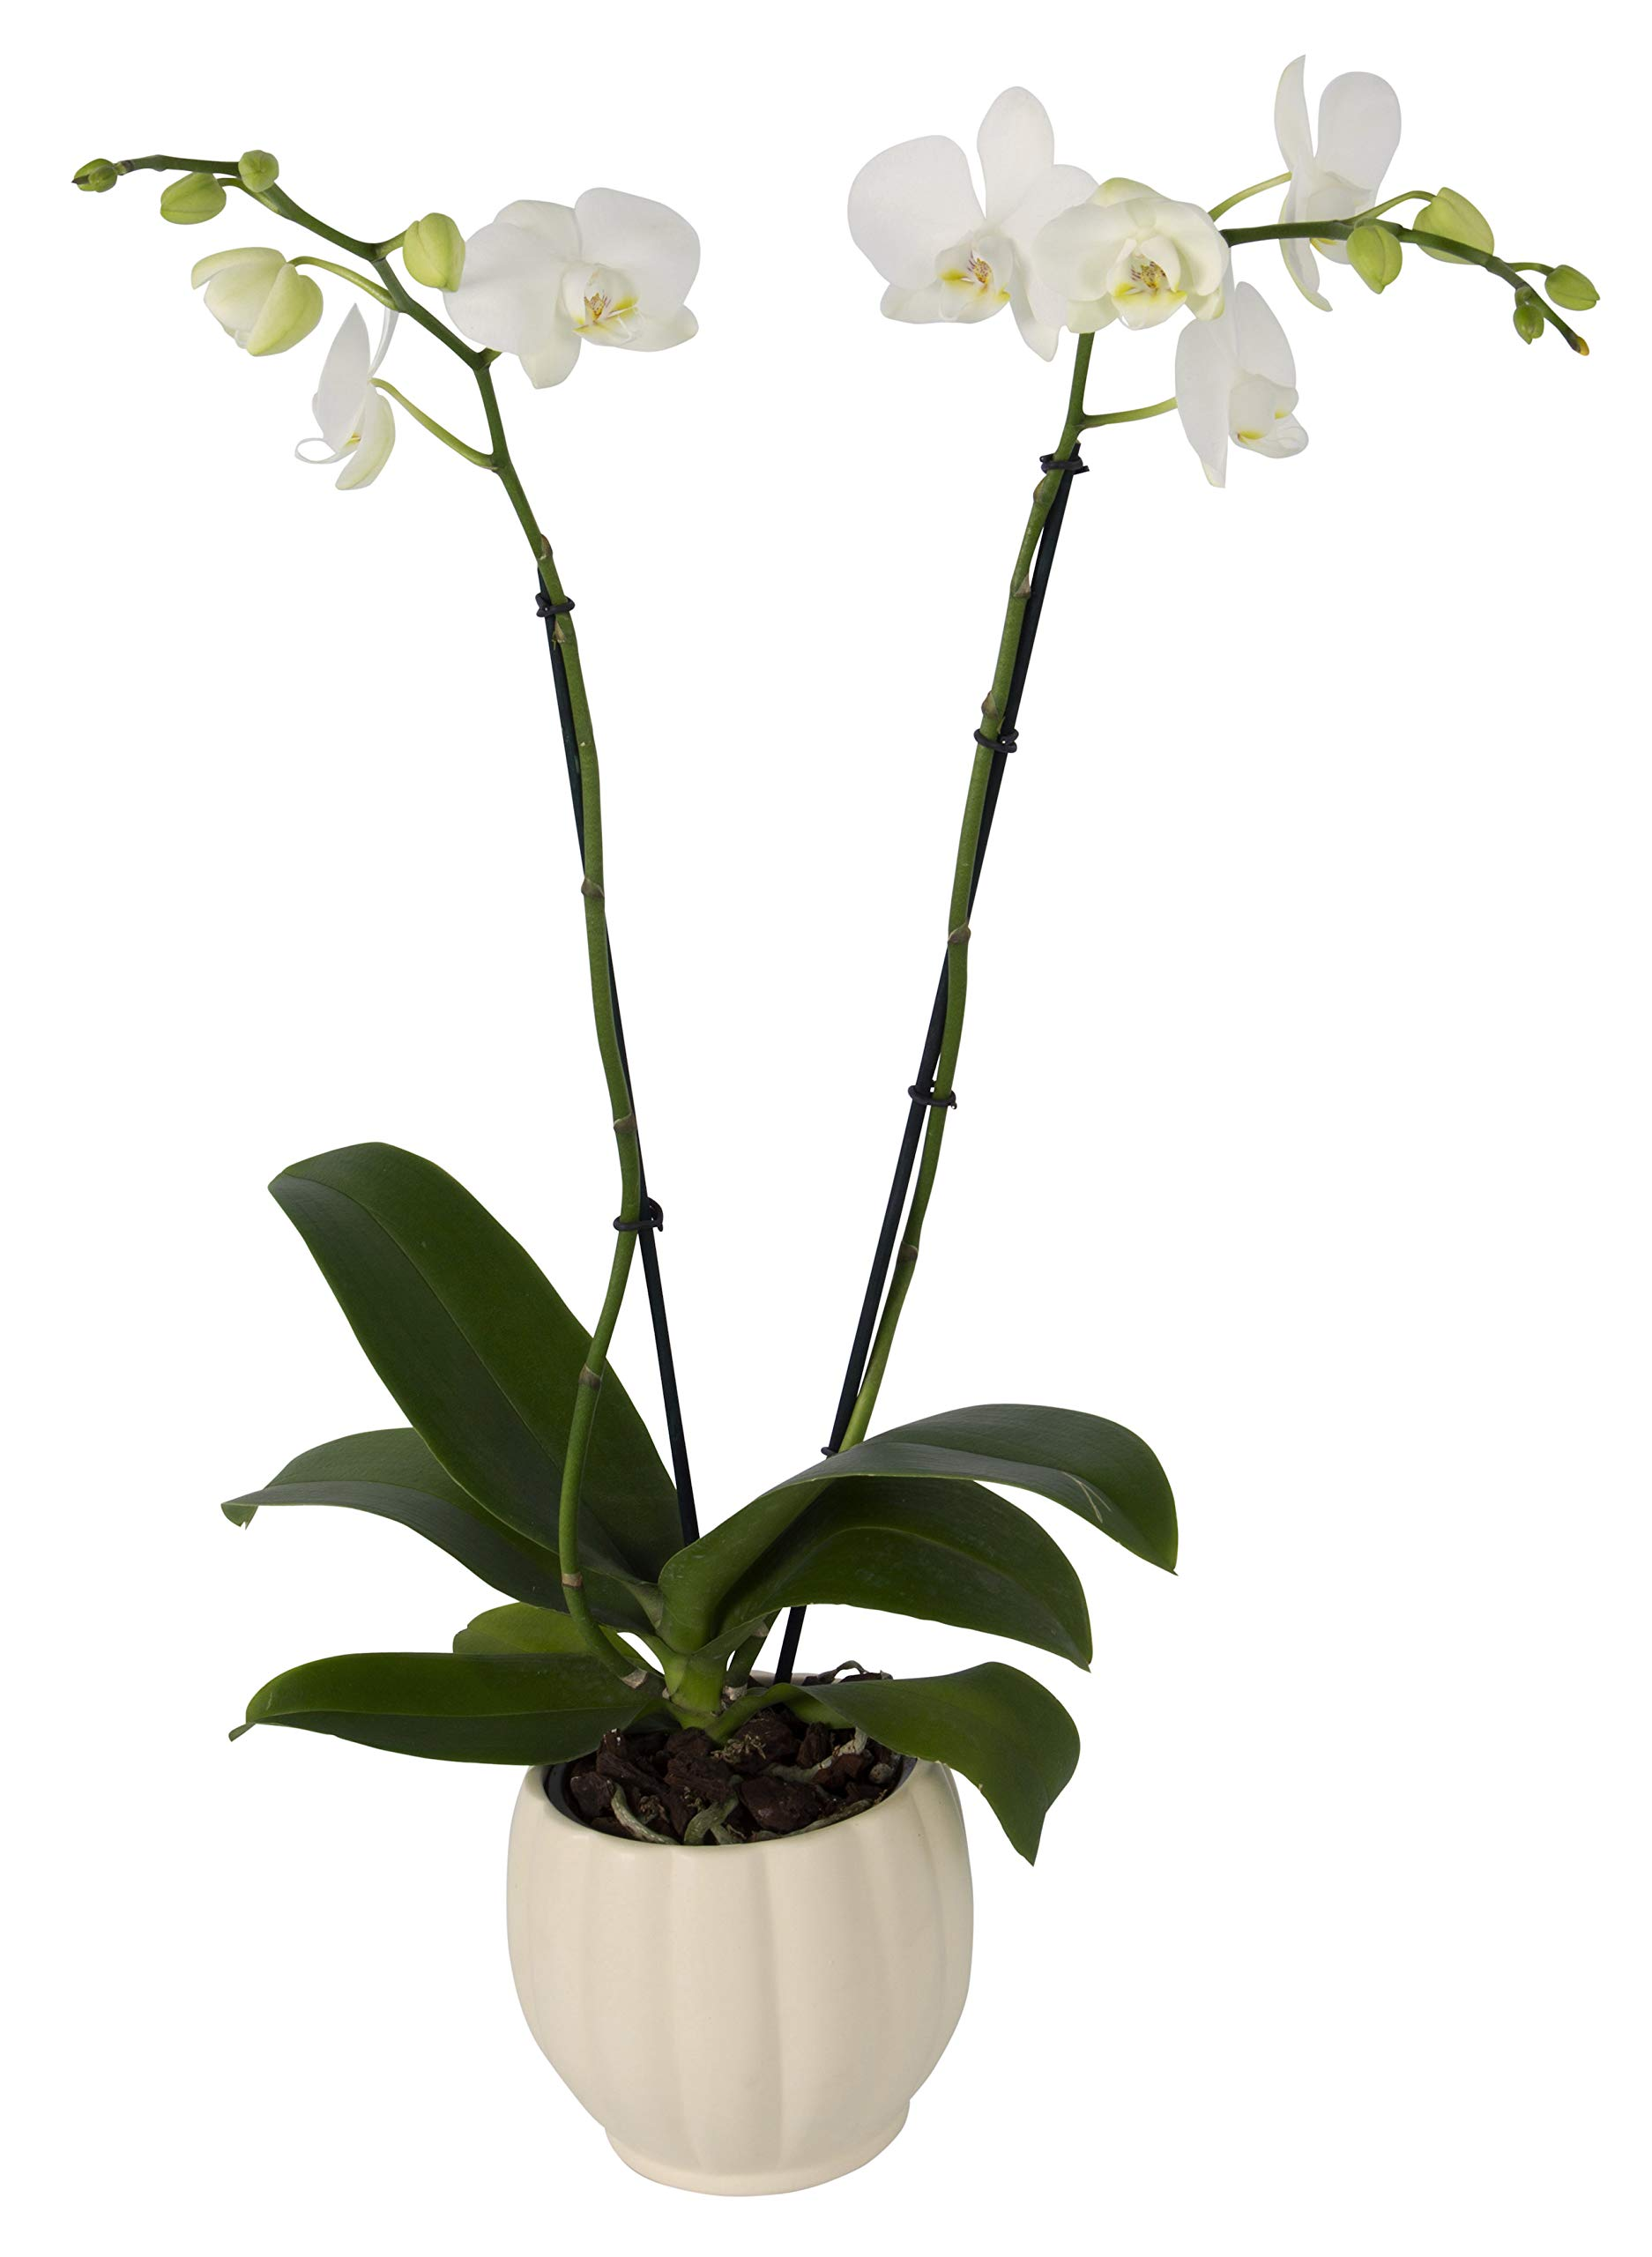 Color Orchids Live Blooming Double Stem Phalaenopsis Orchid Plant in Ceramic Pot, 20'' - 24'' Tall White